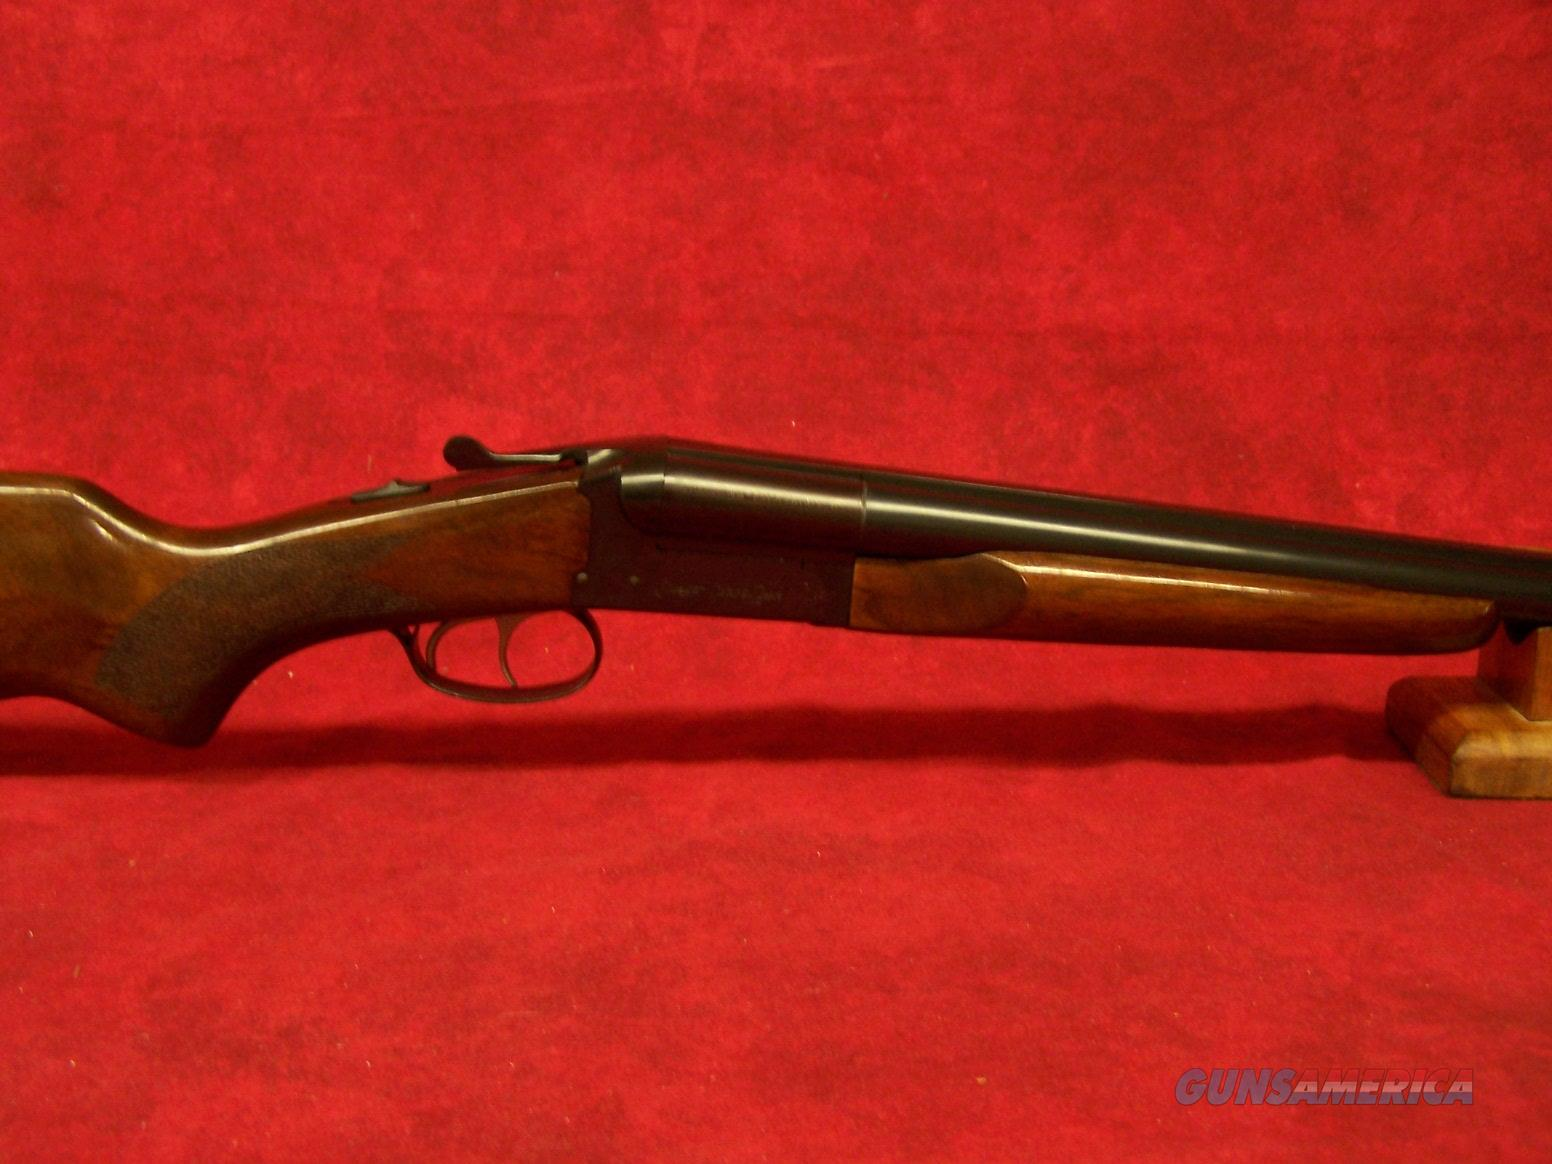 "Stoeger Coach Gun Supreme 20Ga 3"" SxS AA-Grade Gloss Walnut Blue 20"" Barrel (31487)  Guns > Shotguns > Stoeger Shotguns"